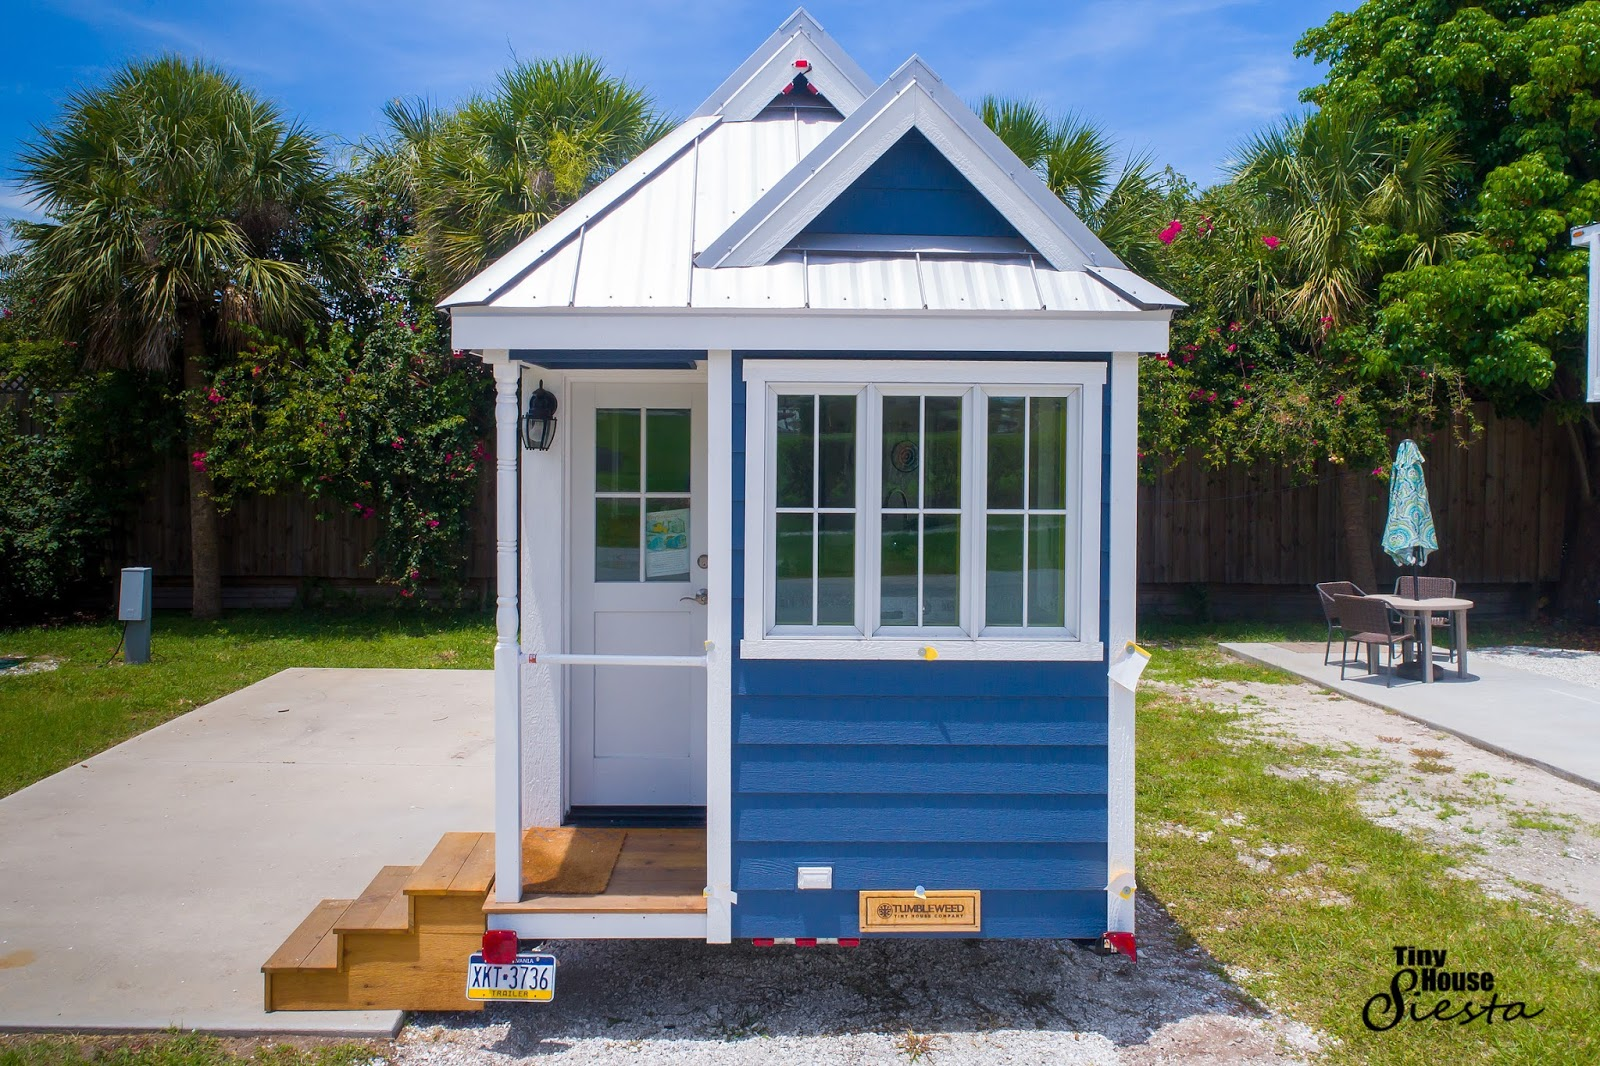 Tiny house town the eleanor at tiny house siesta for Small homes in florida